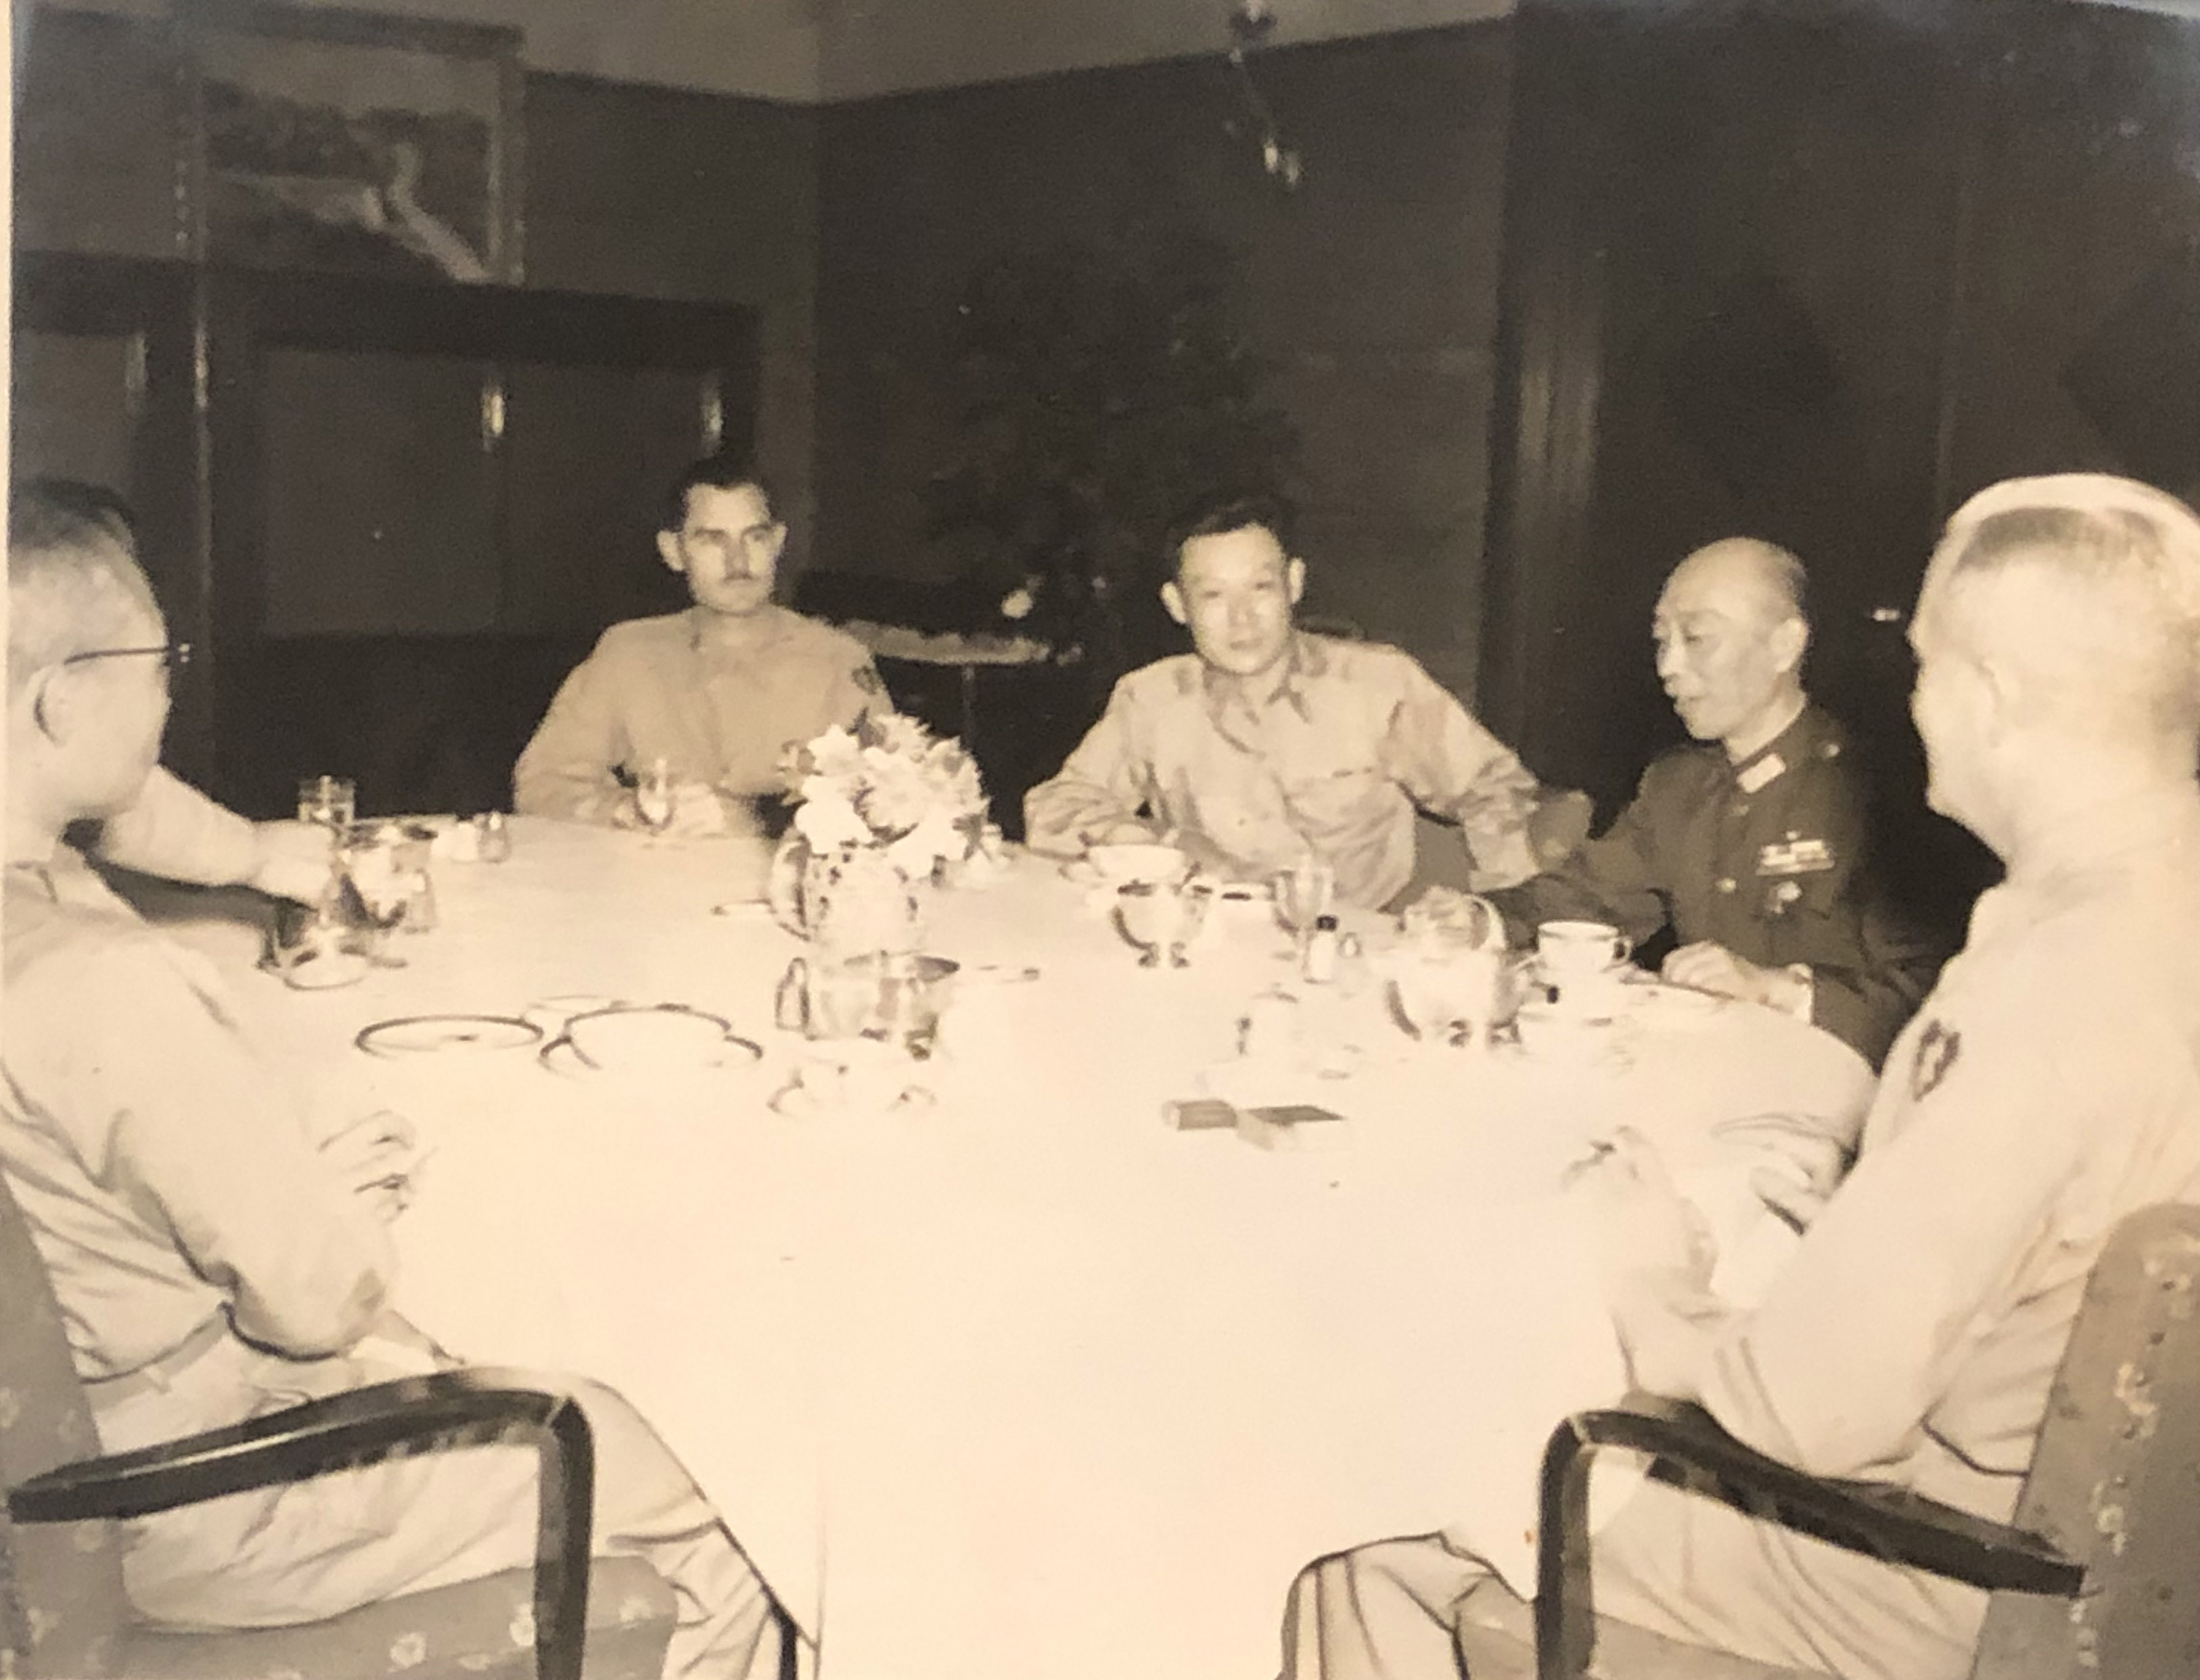 Colonel Walter Buie   WWII Japan Chief of Staff for the 25th Infantry Division   Seated at Table